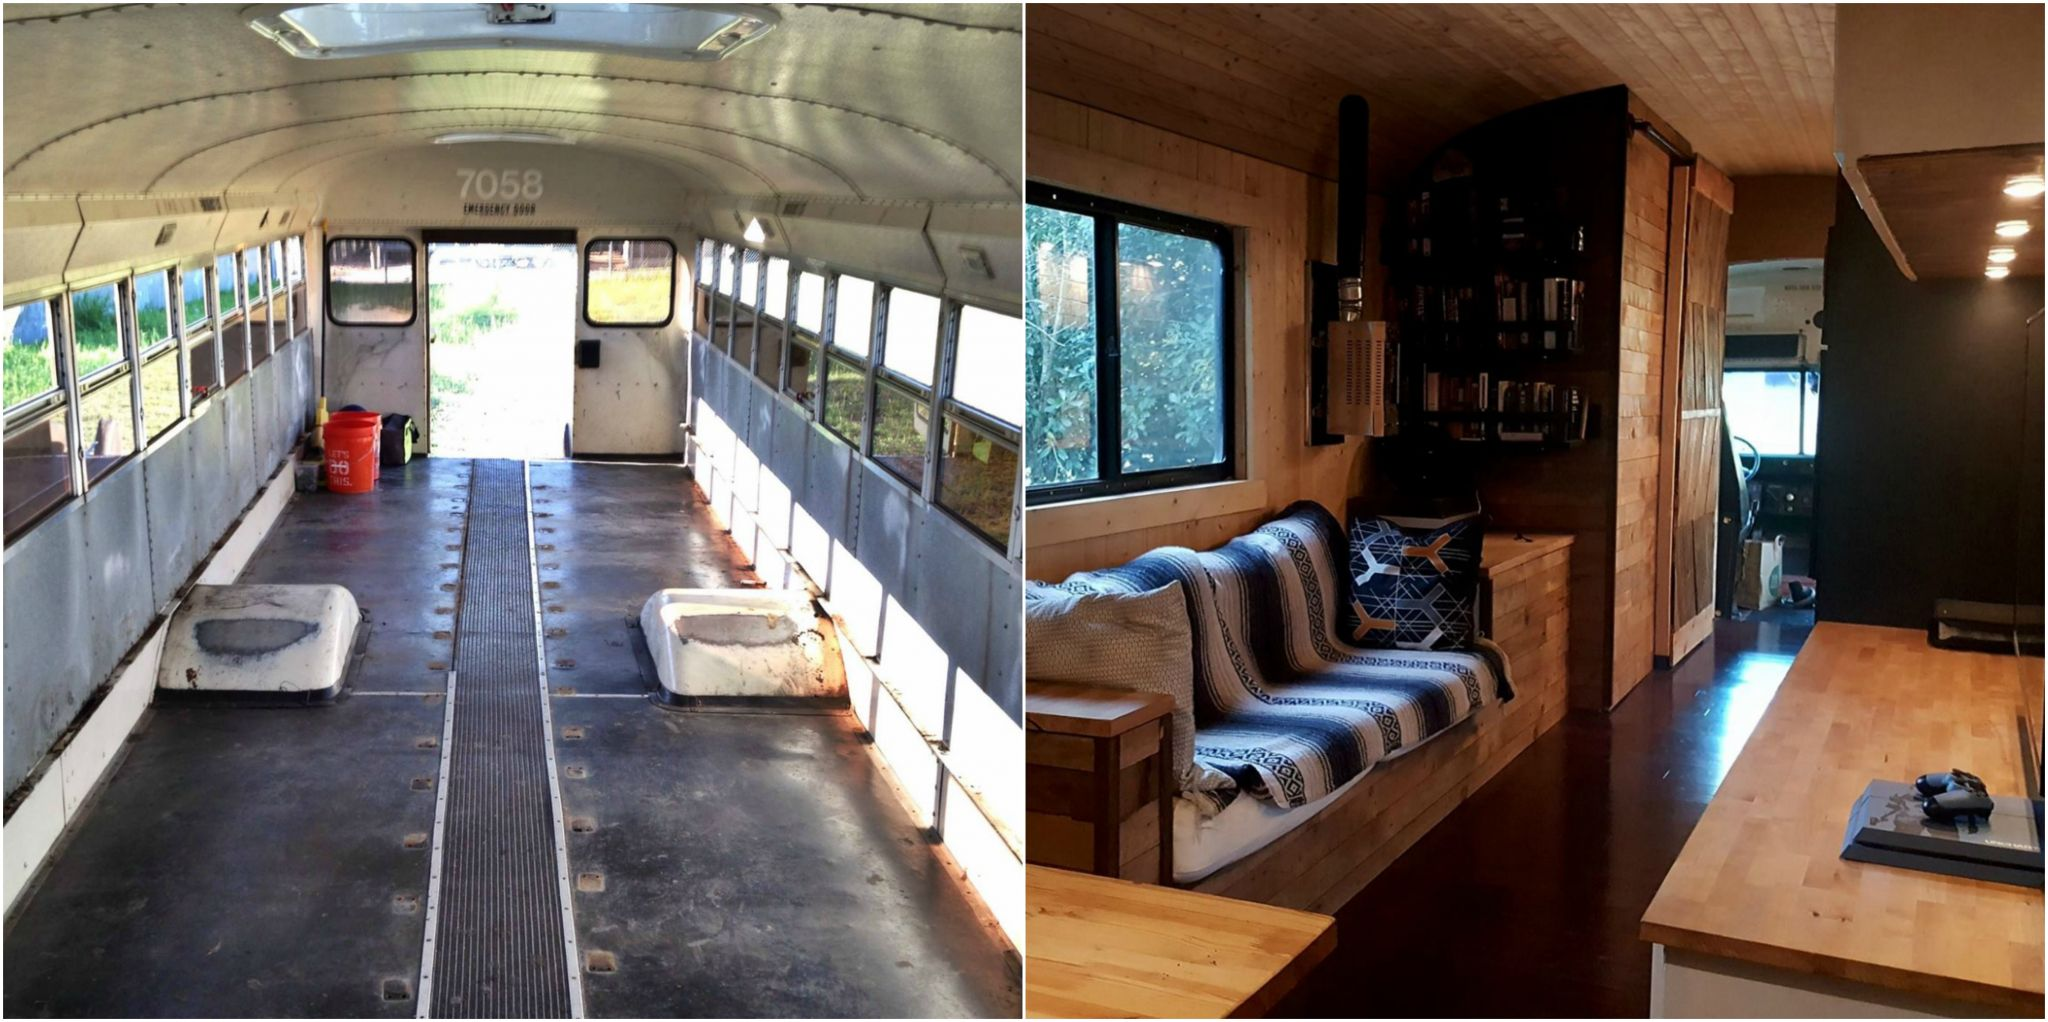 Austin Guy Spends 15k To Make A Tiny Home Out Of A School Bus